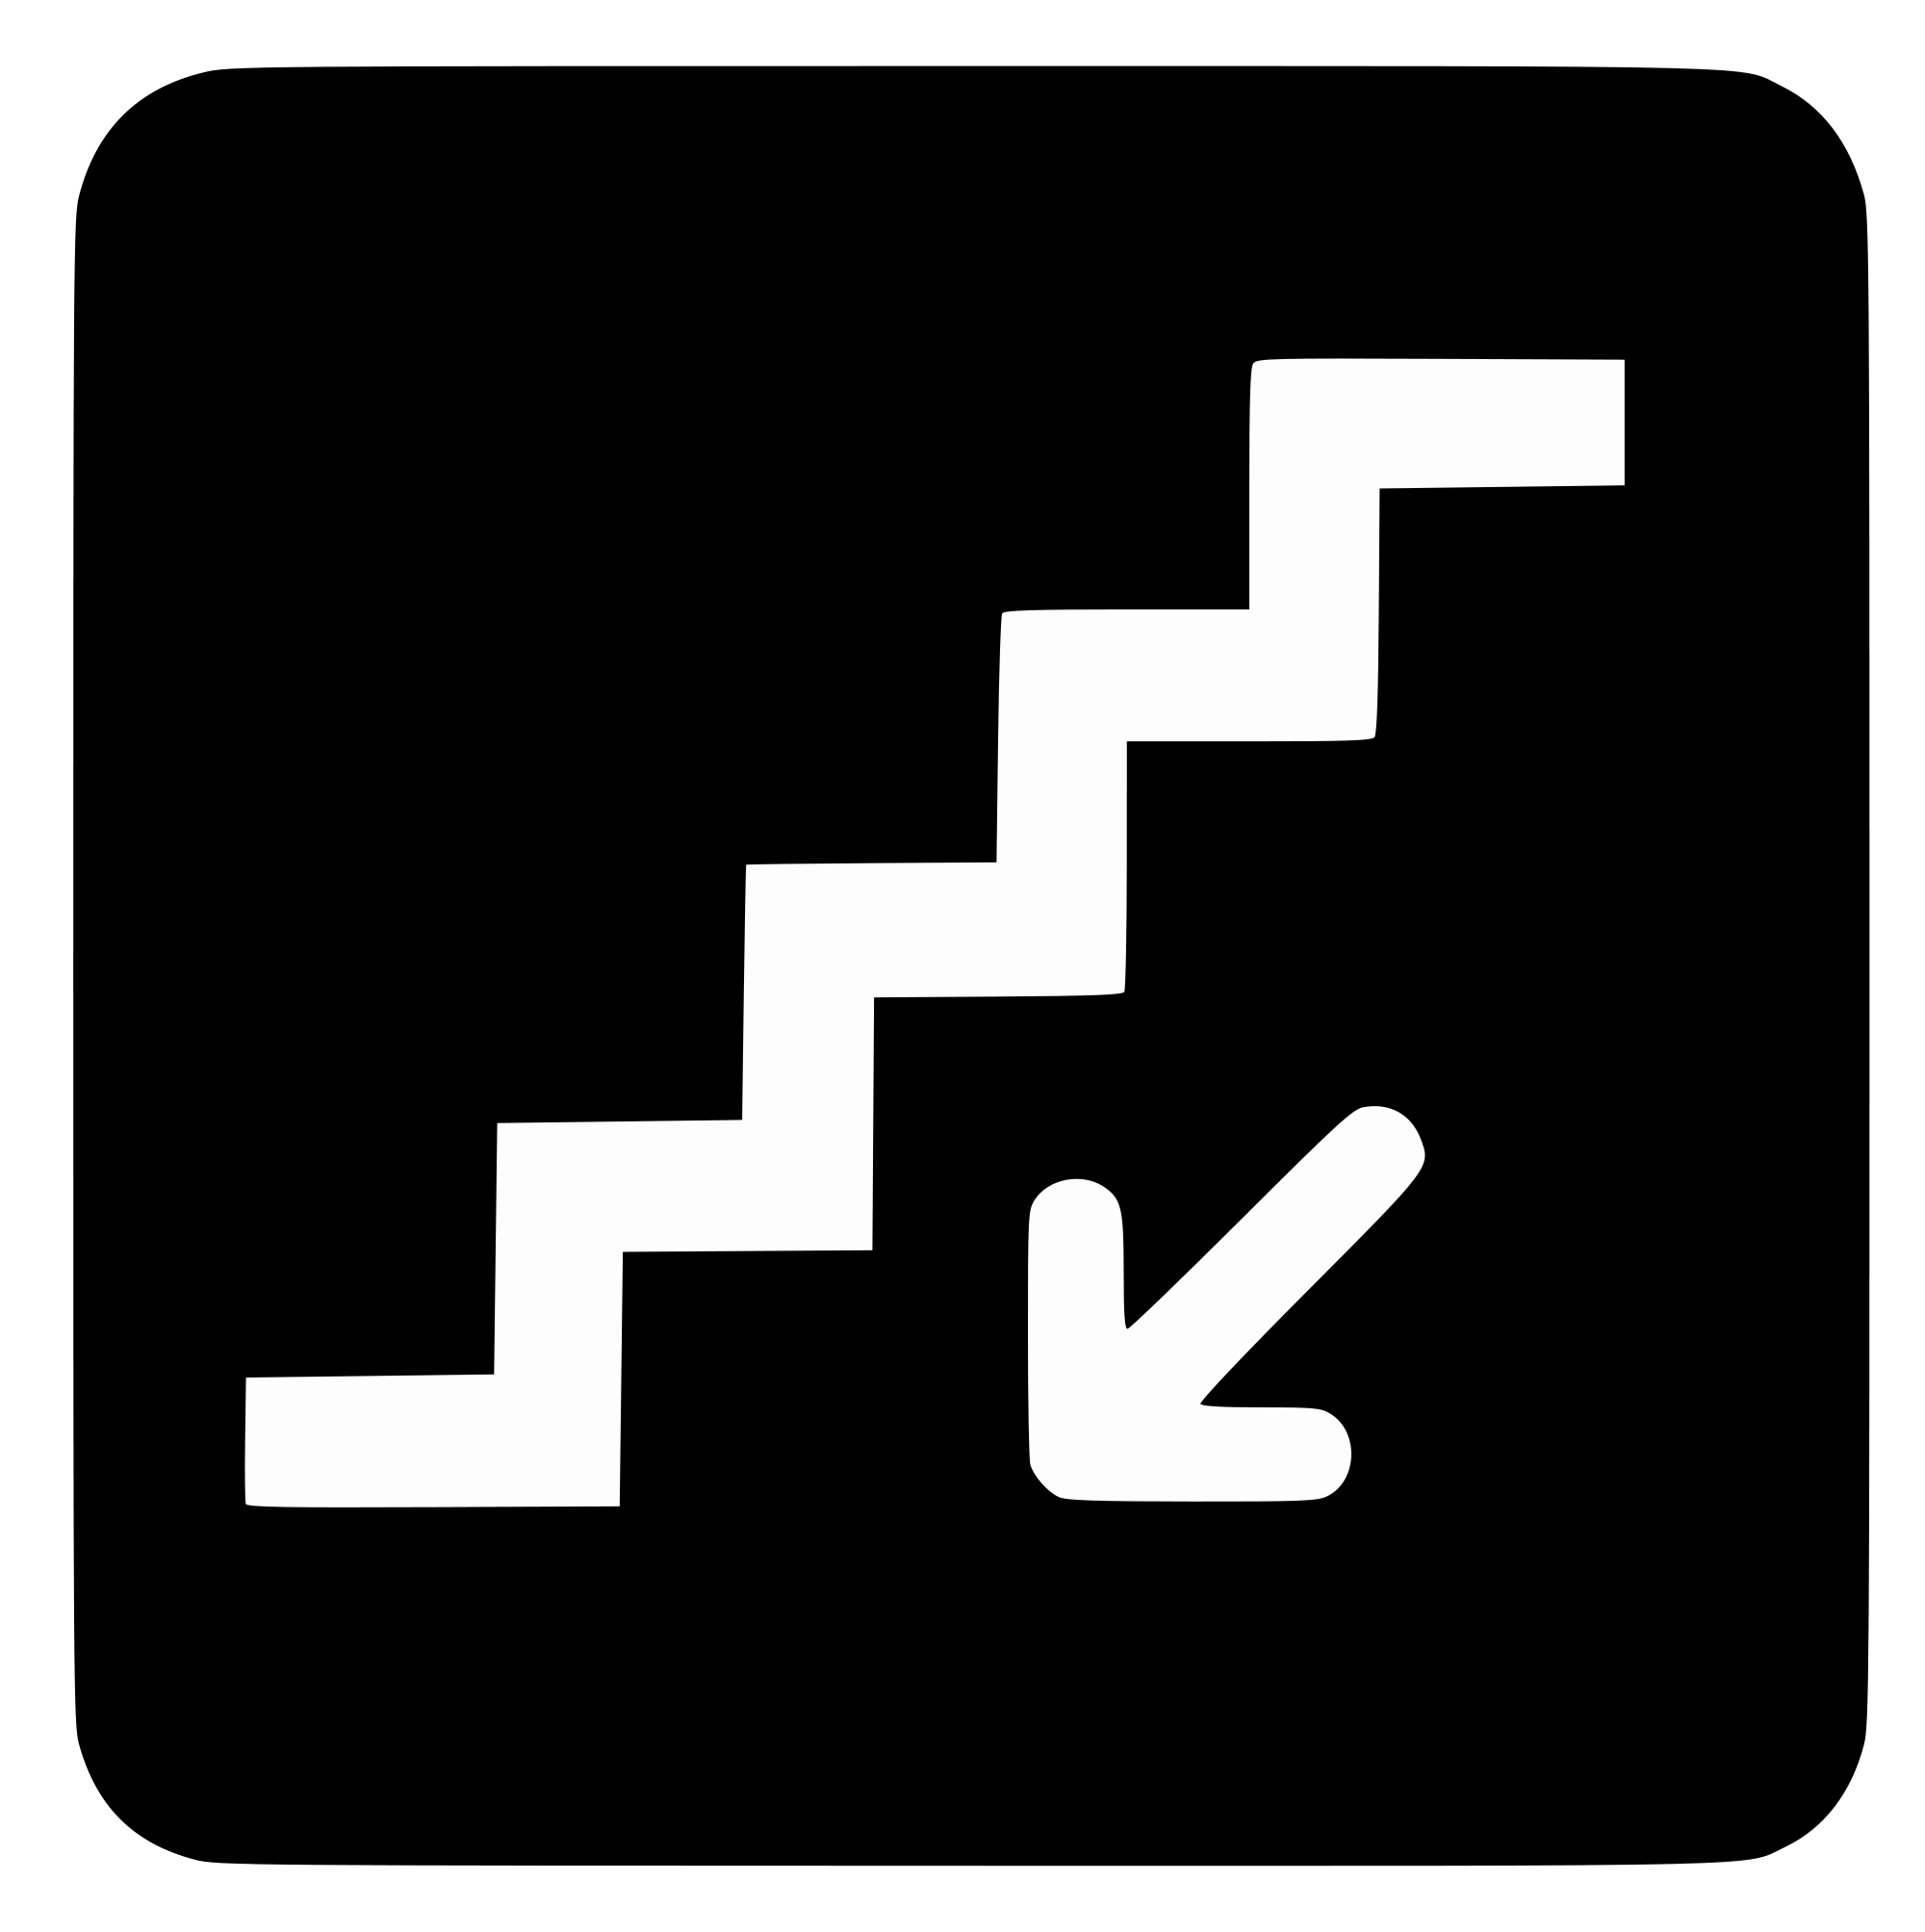 Staircase clipart symbol. File aiga stairs down